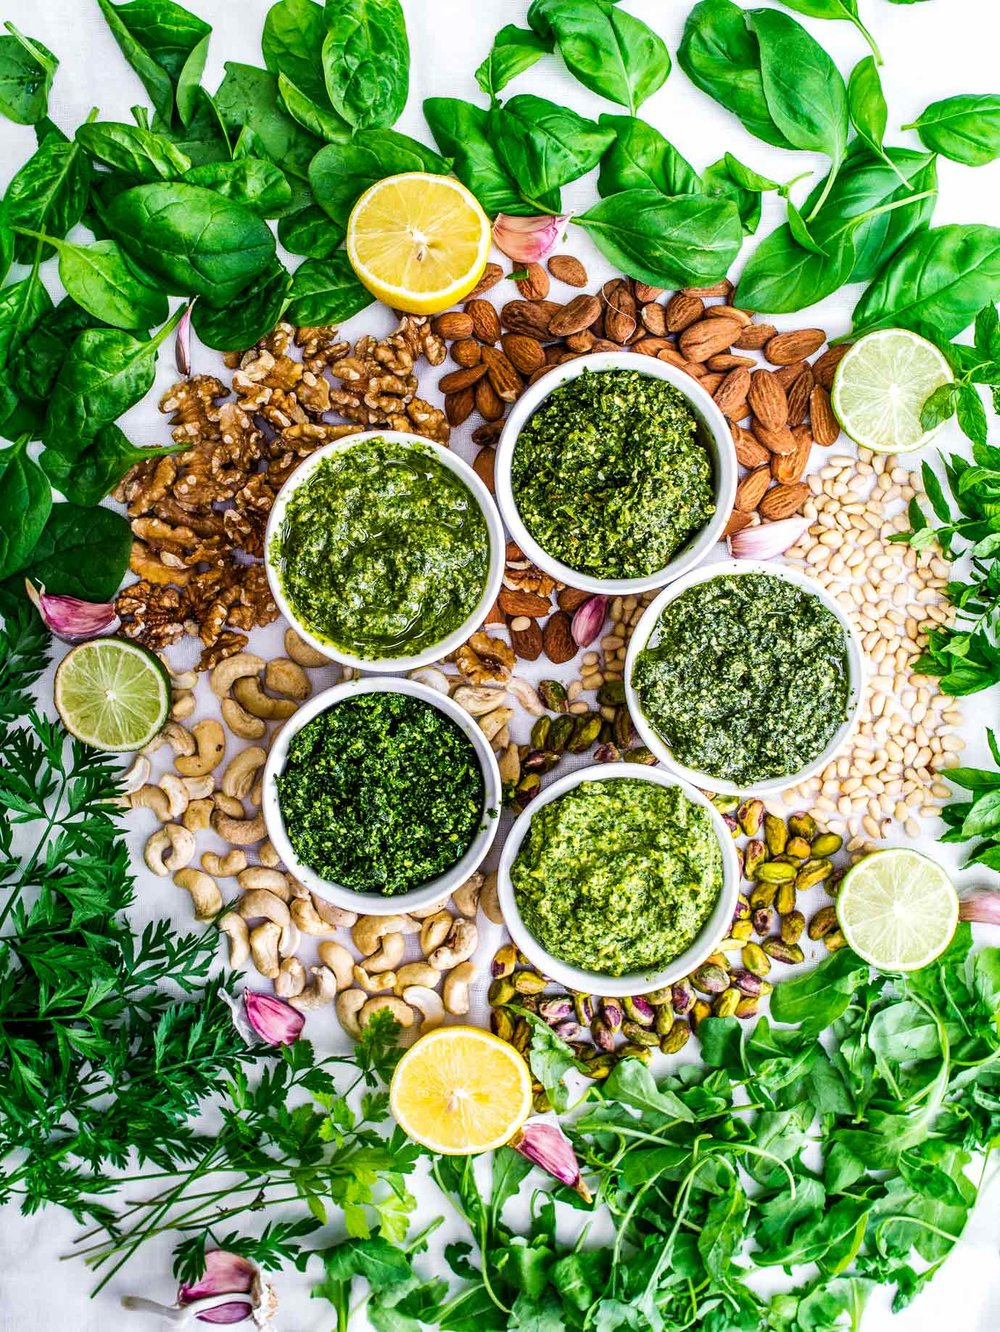 How to make any vegan pesto - adaptable so choose your herb, nut, citrus and oil!  #infographic #graphic #flowchart #recipe #recipes #dips #homemade #healthy #basil #dairyfree #gluten #free #easy #vegetarian #spinach #mint #cashew #green #walnut #almond #vegan #how #make